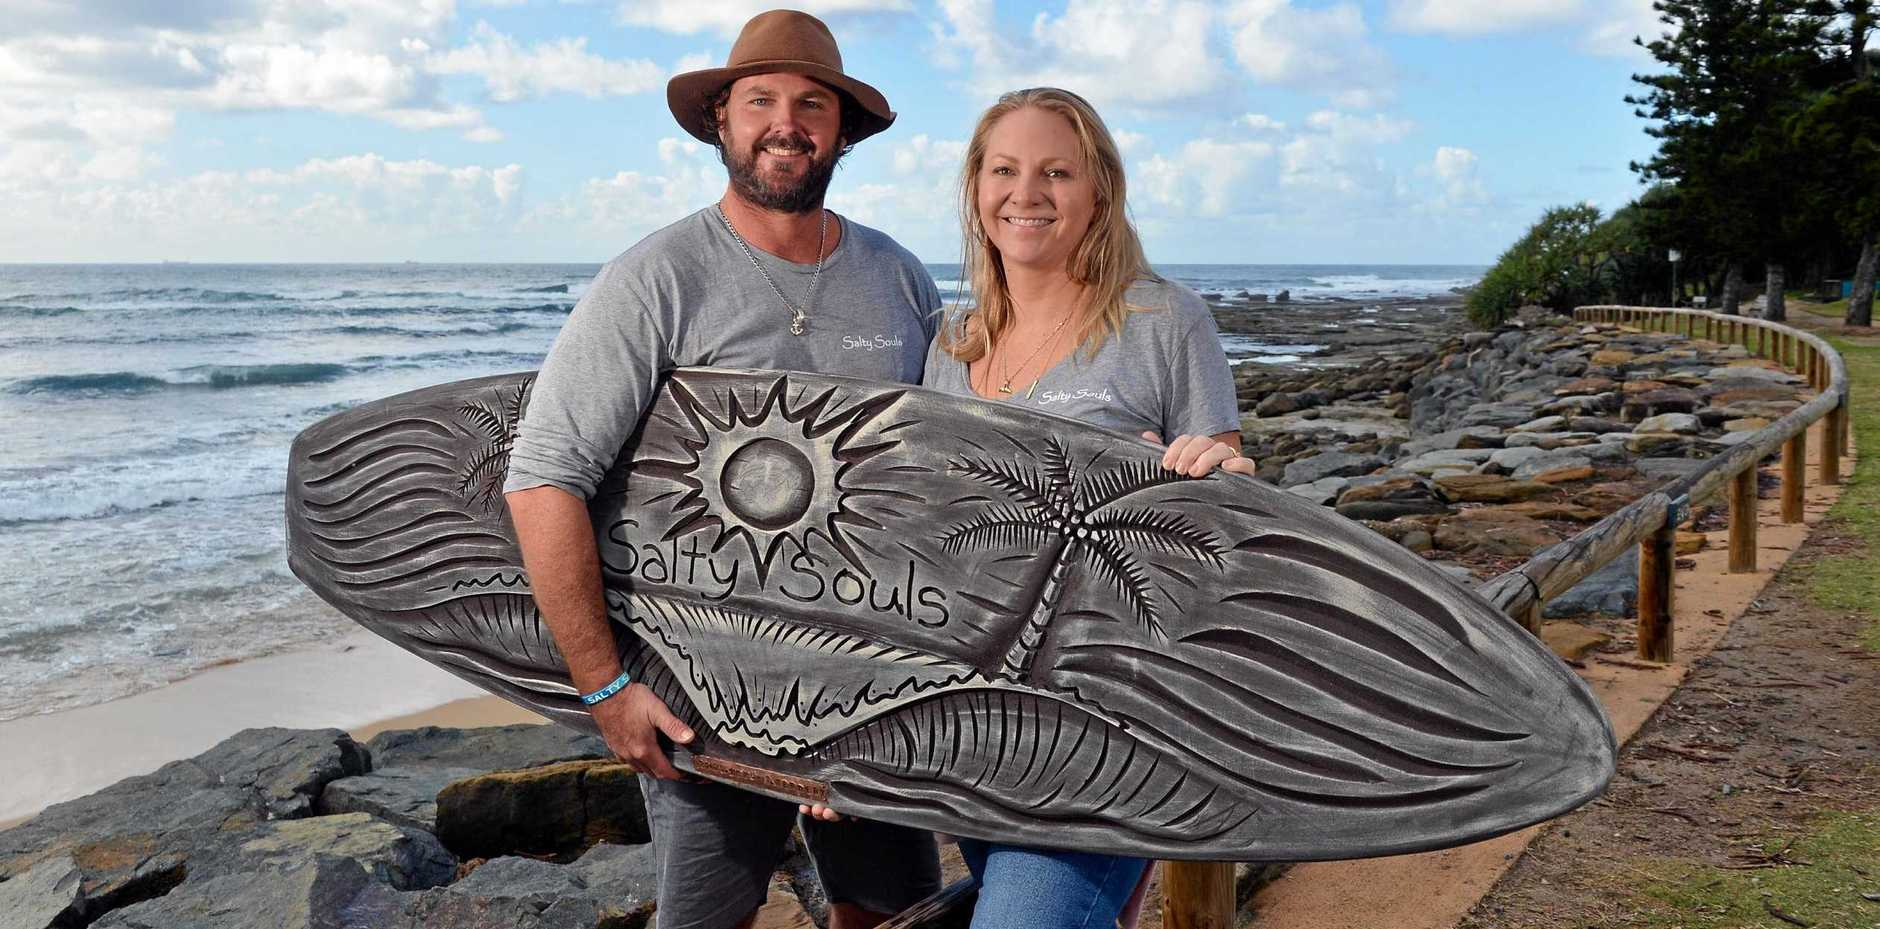 IN HONOUR: Michael Kennedy and Tamara Smith decided to carry on their brother Tyler Kennedy's vision with Salty Souls Legacy after he died in a tragic accident in Bali.